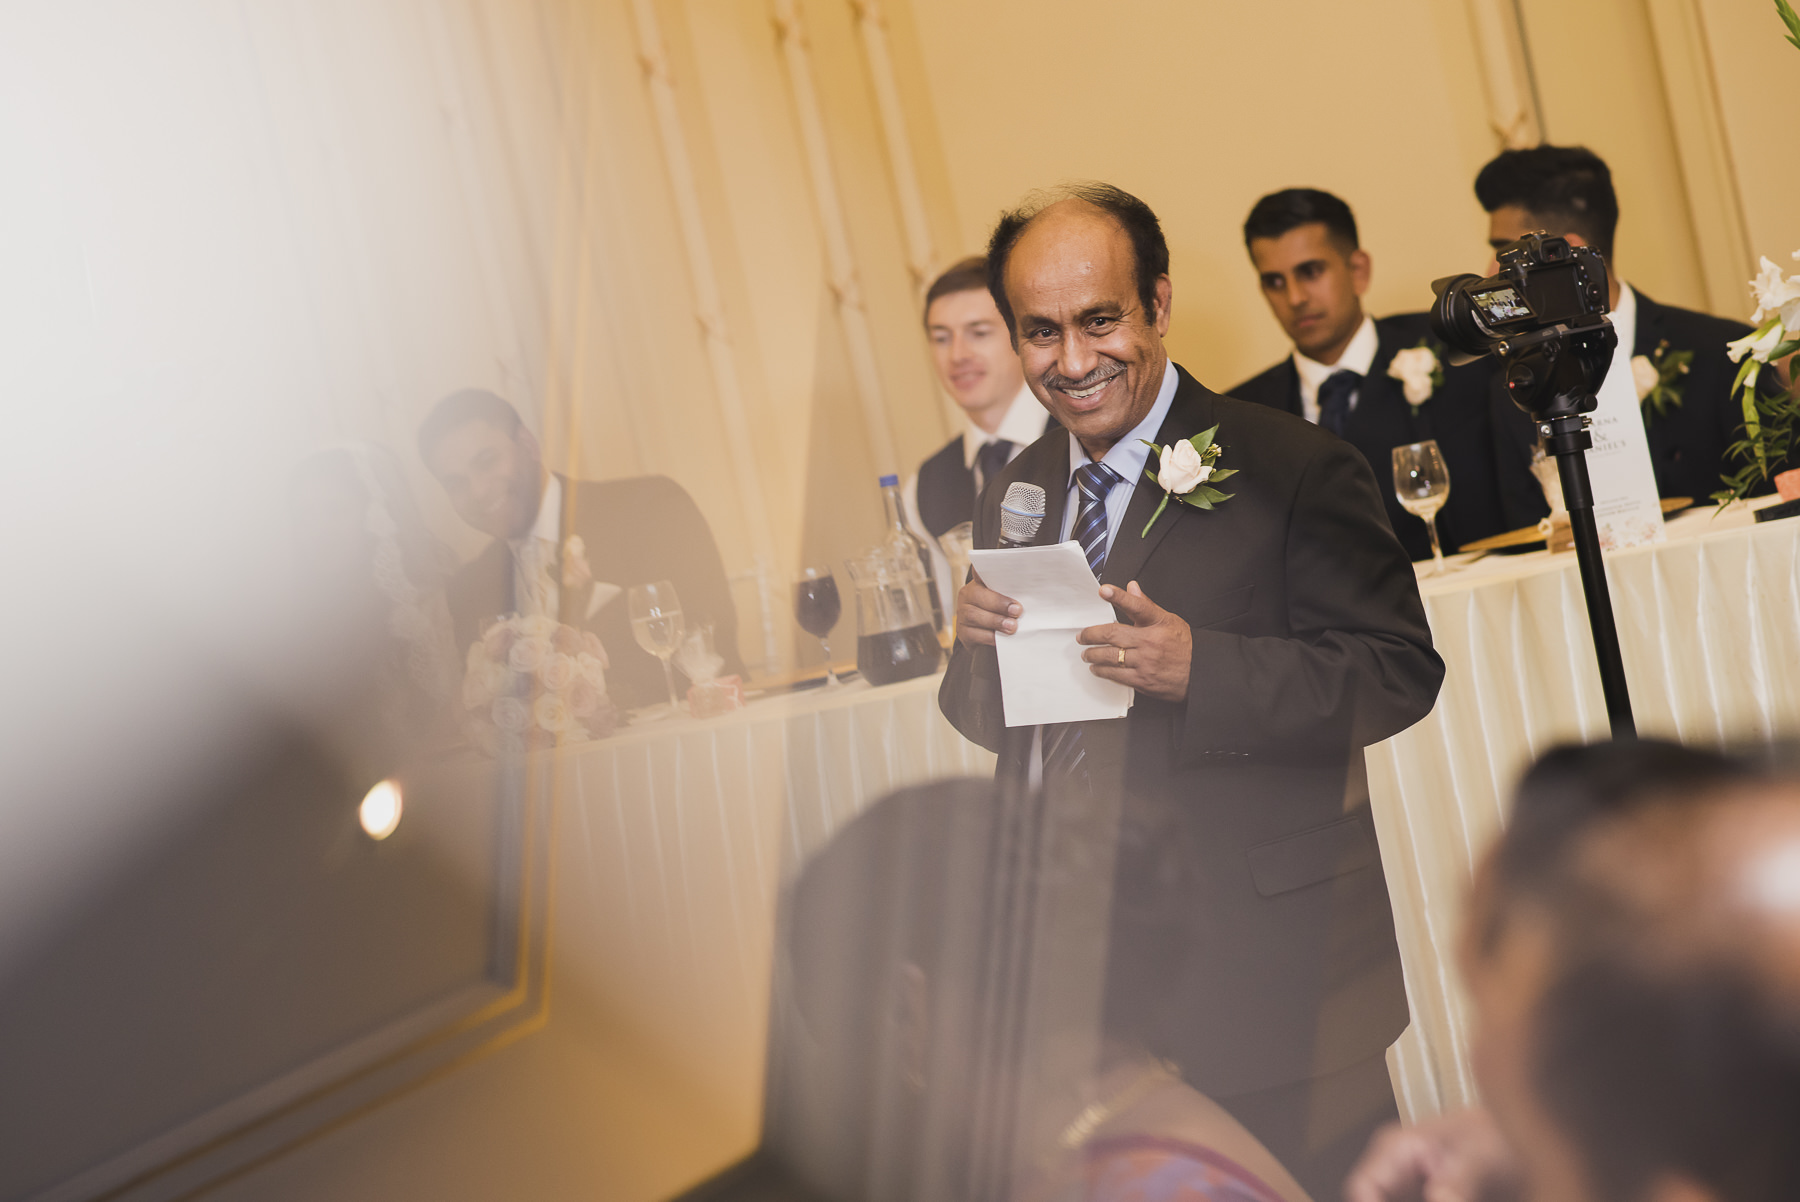 Mayfair Wedding Photography Speech